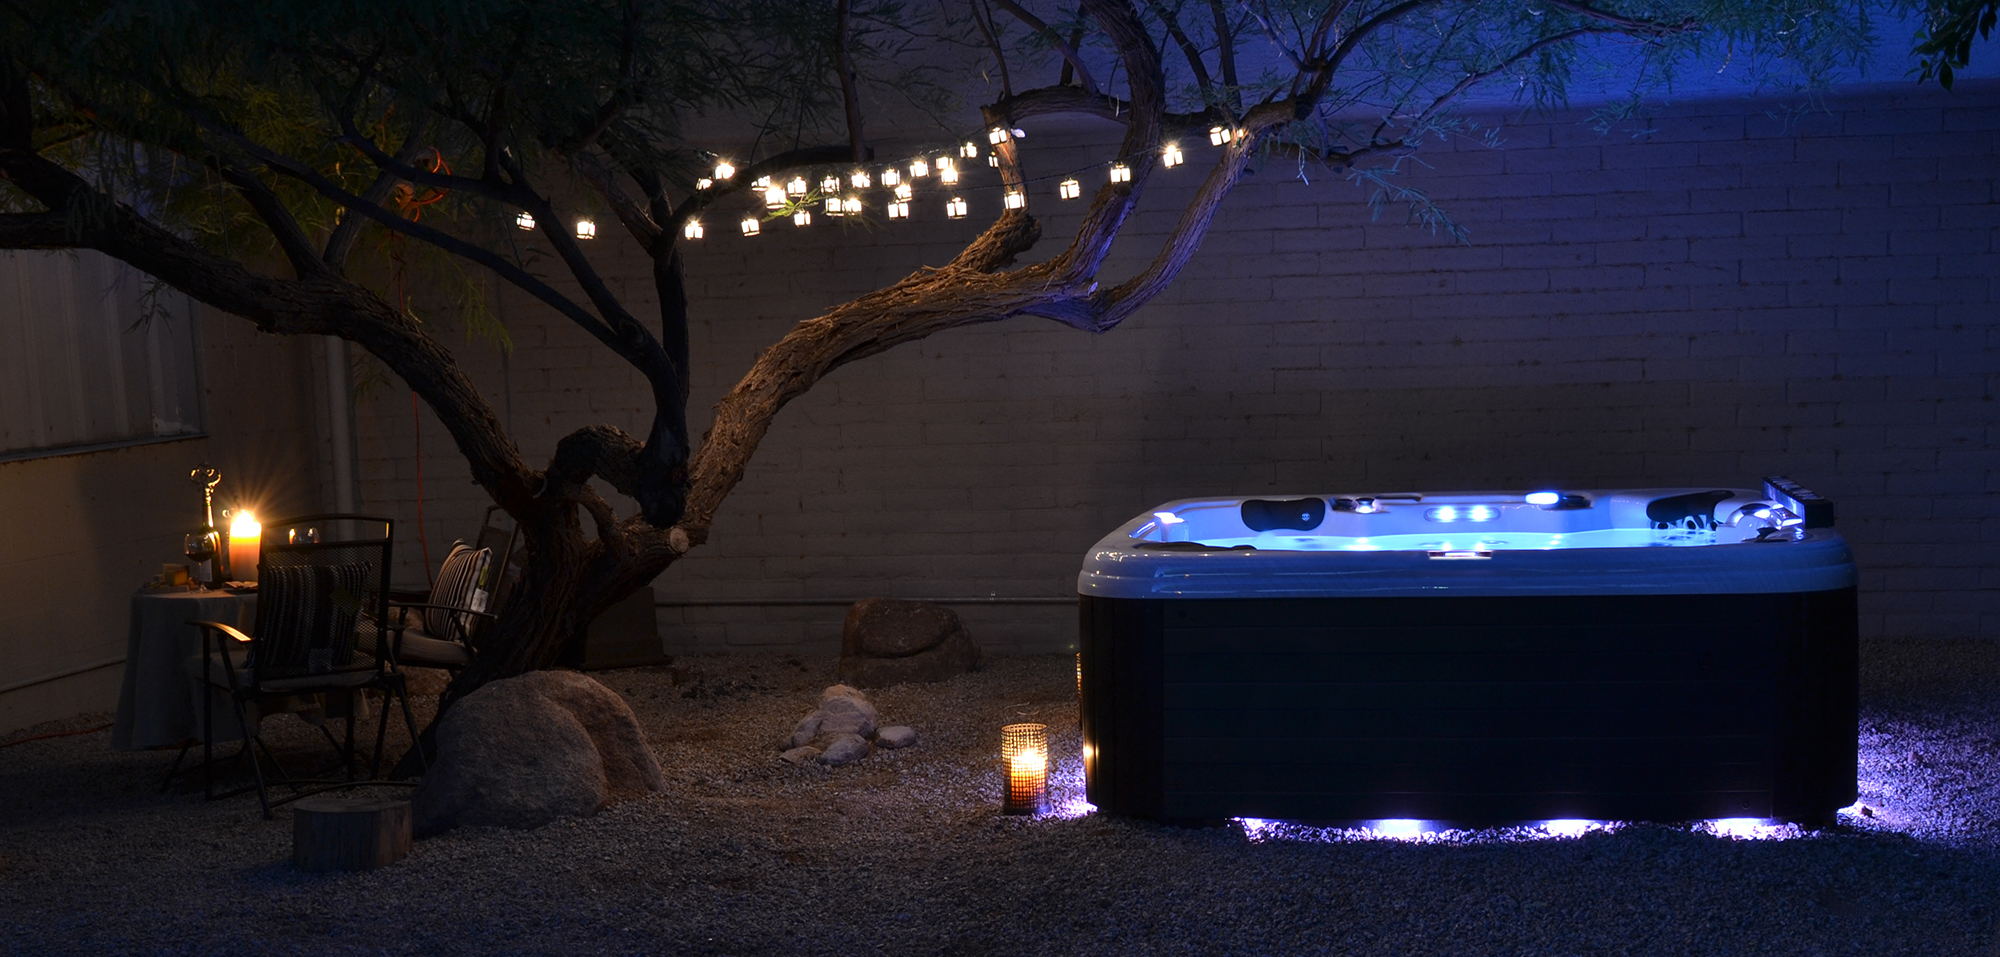 Best Time to Buy a Hot Tub